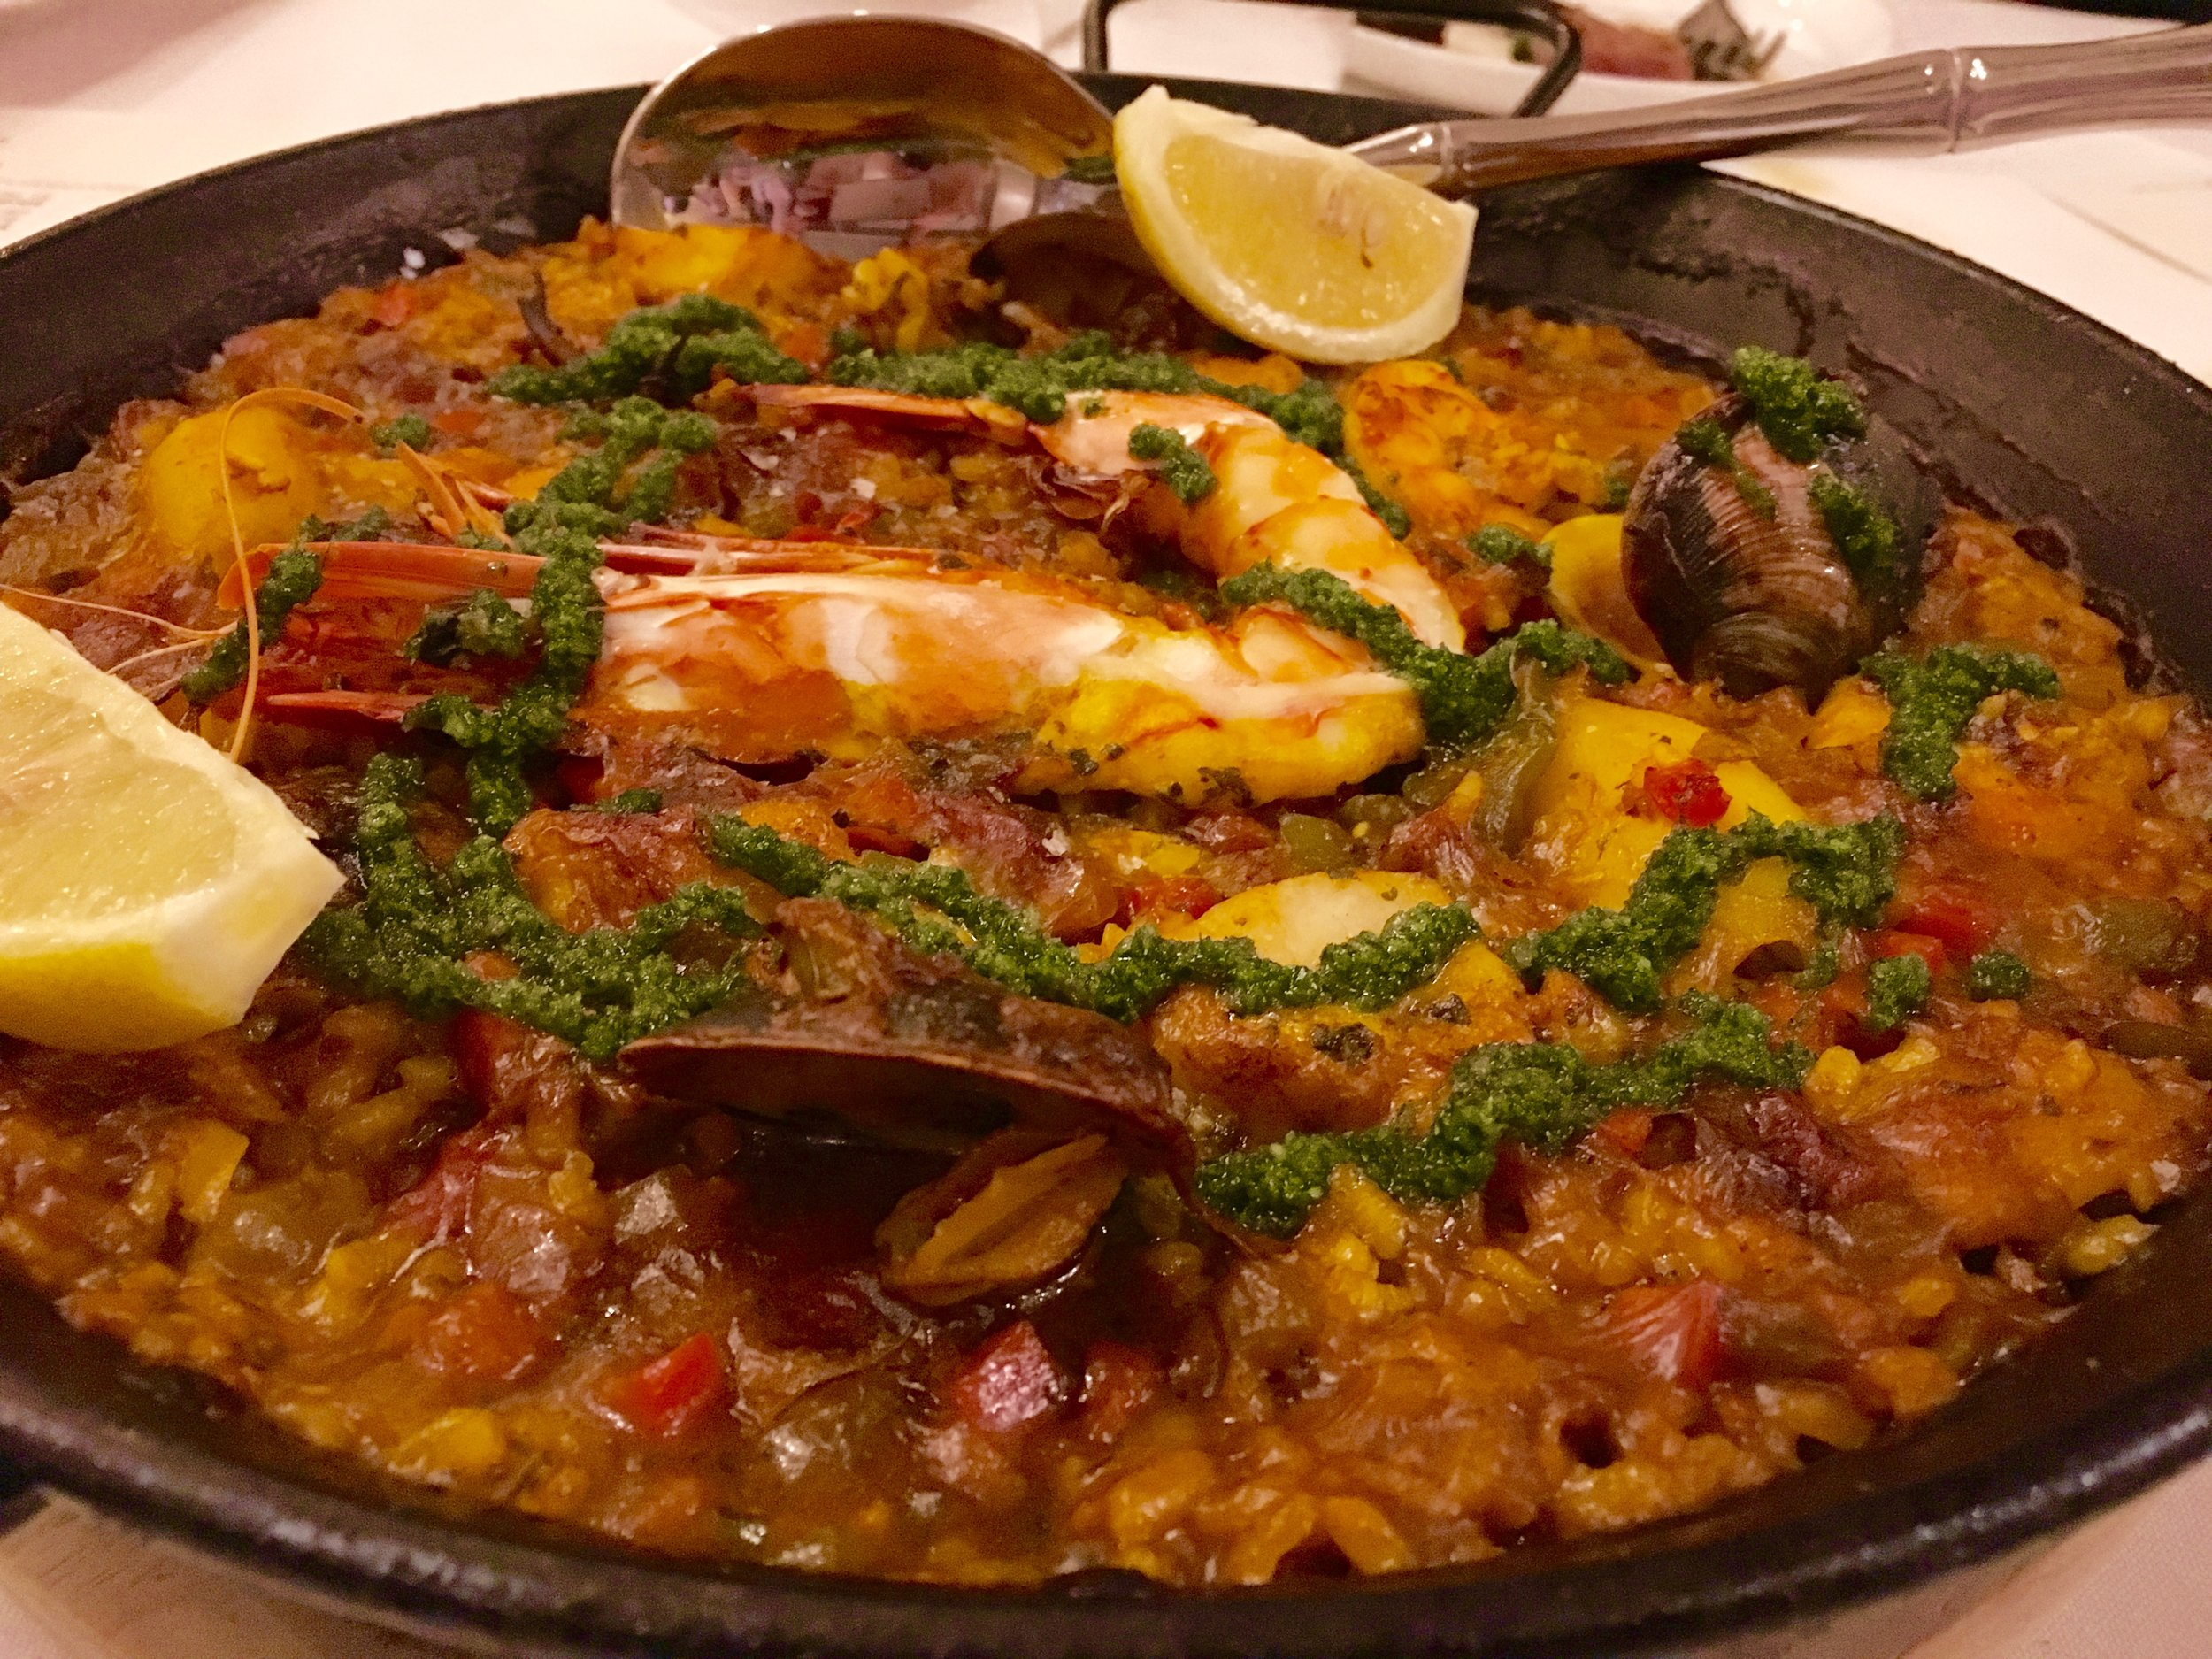 I'm kind of burnt out on paella in general because most are made so poorly. This one is an exception. The saffron rice is al dente yet creamy, somehow, with a smokey underlay. It's loaded with shellfish and topped with red sofrito and an herb sauce.